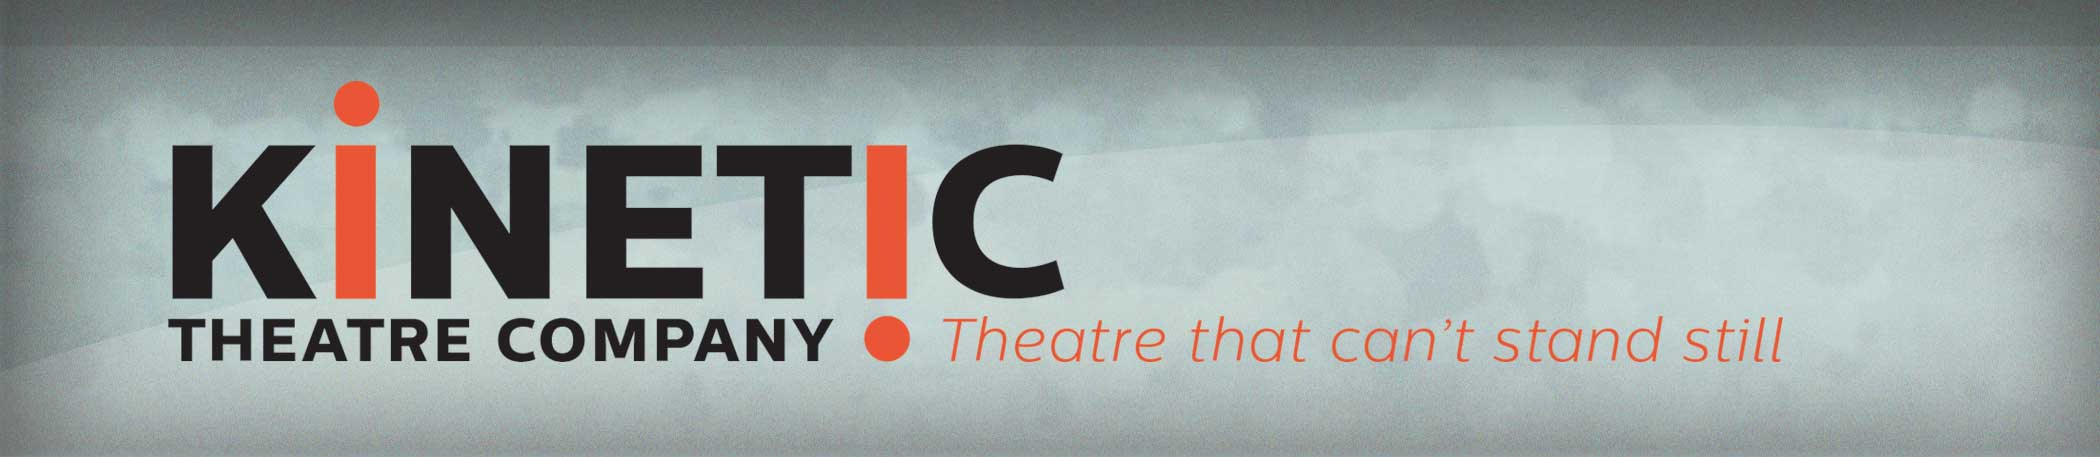 Find tickets from Kinetic Theatre Co.